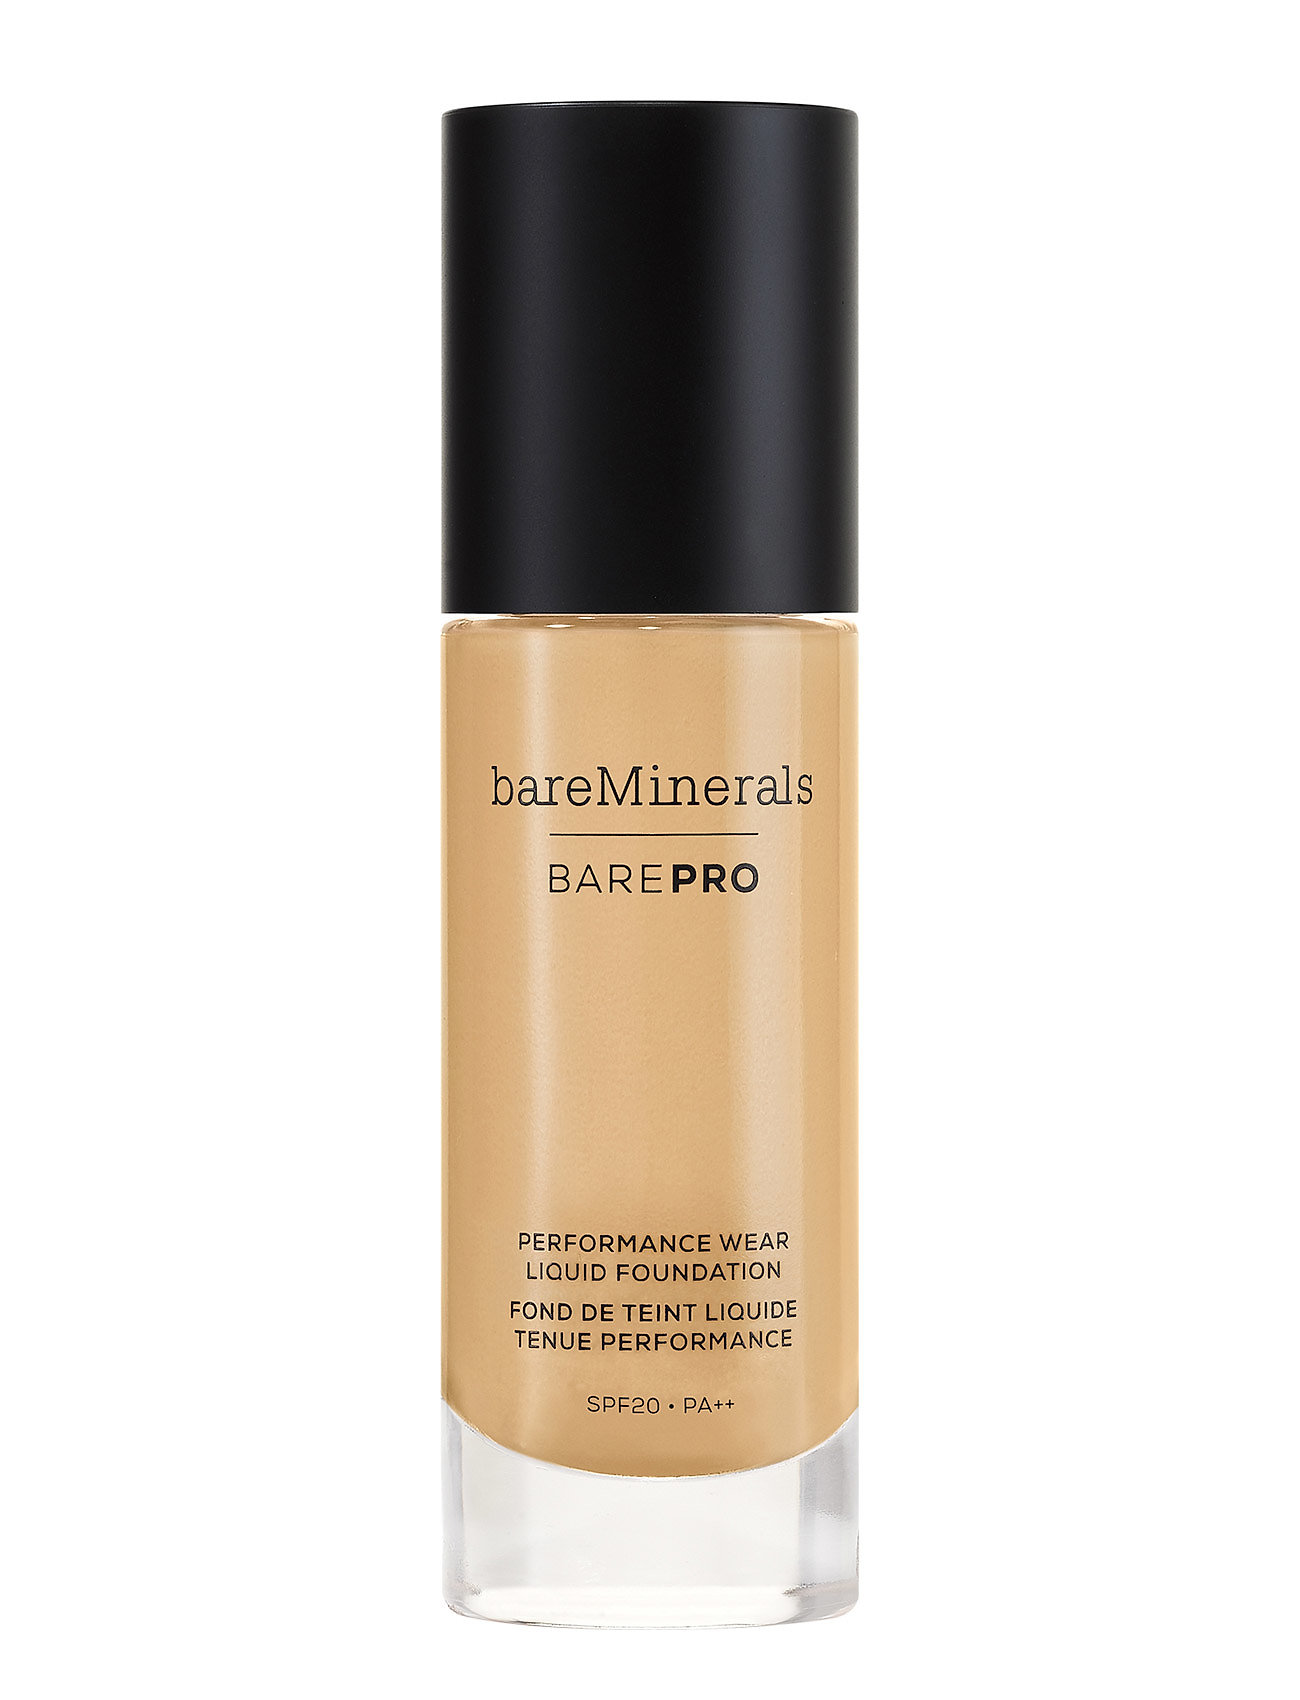 Image of Barepro Performance Wear Liquid Foundation Spf 20 Foundation Makeup BareMinerals (3406150215)